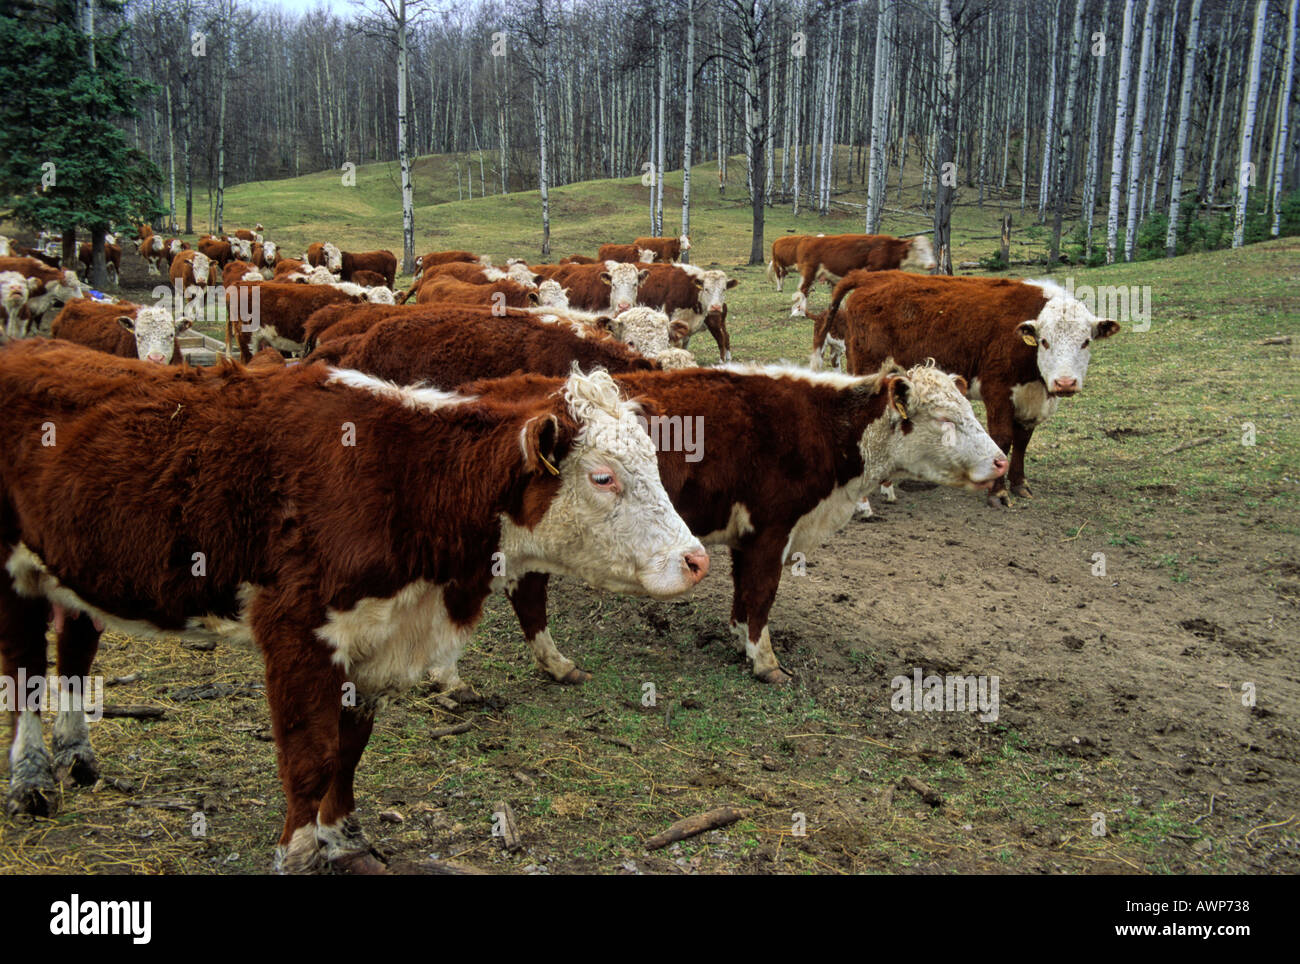 A Herd of Beef Cattle - Stock Image